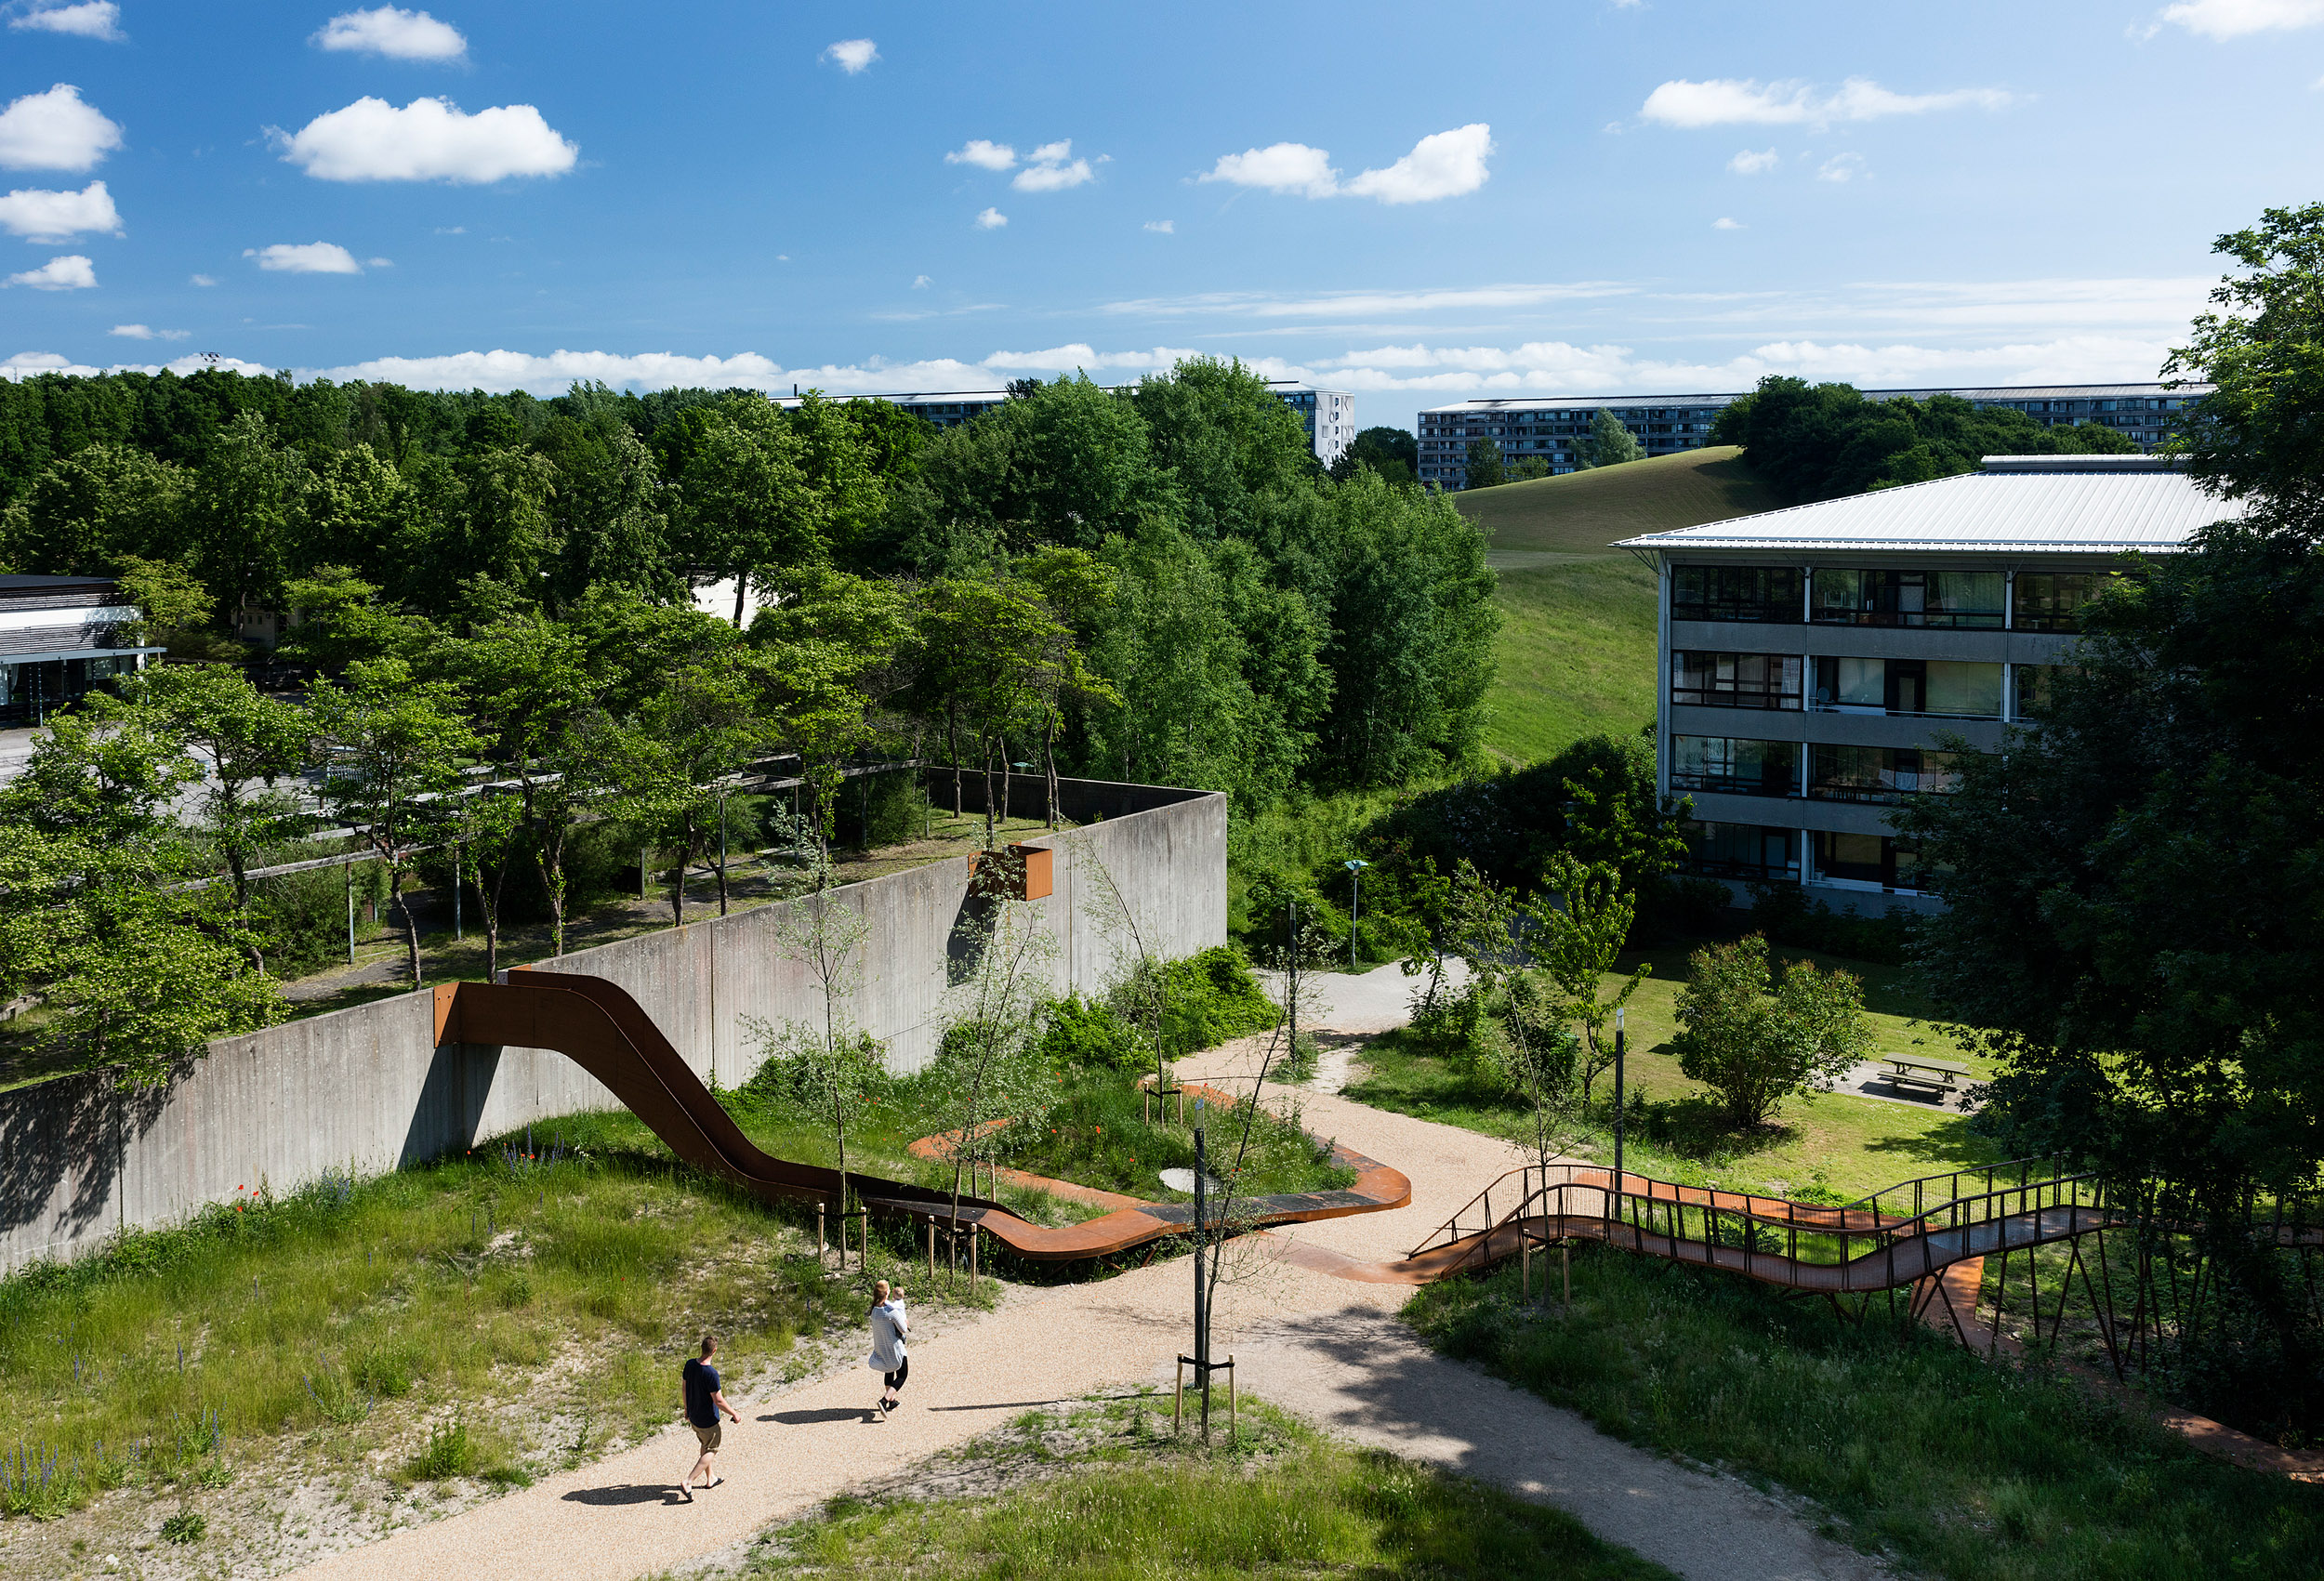 The Loop, realised by Holscher Nordberg Architects  Værebro Park, a residential area in the suburbs of Copenhagen, has in the last years suffered from high crime rates and a declining number of inhabitants. Placed in the intersection between an indoor swimming pool, a primary and secondary school, and the 1400 dwellings of Værebro Park, the activity path aims to create a physical and mental bridge between the different users of the area. The low budget yet esthetical element is designed as a playful path offering a variation of activities.